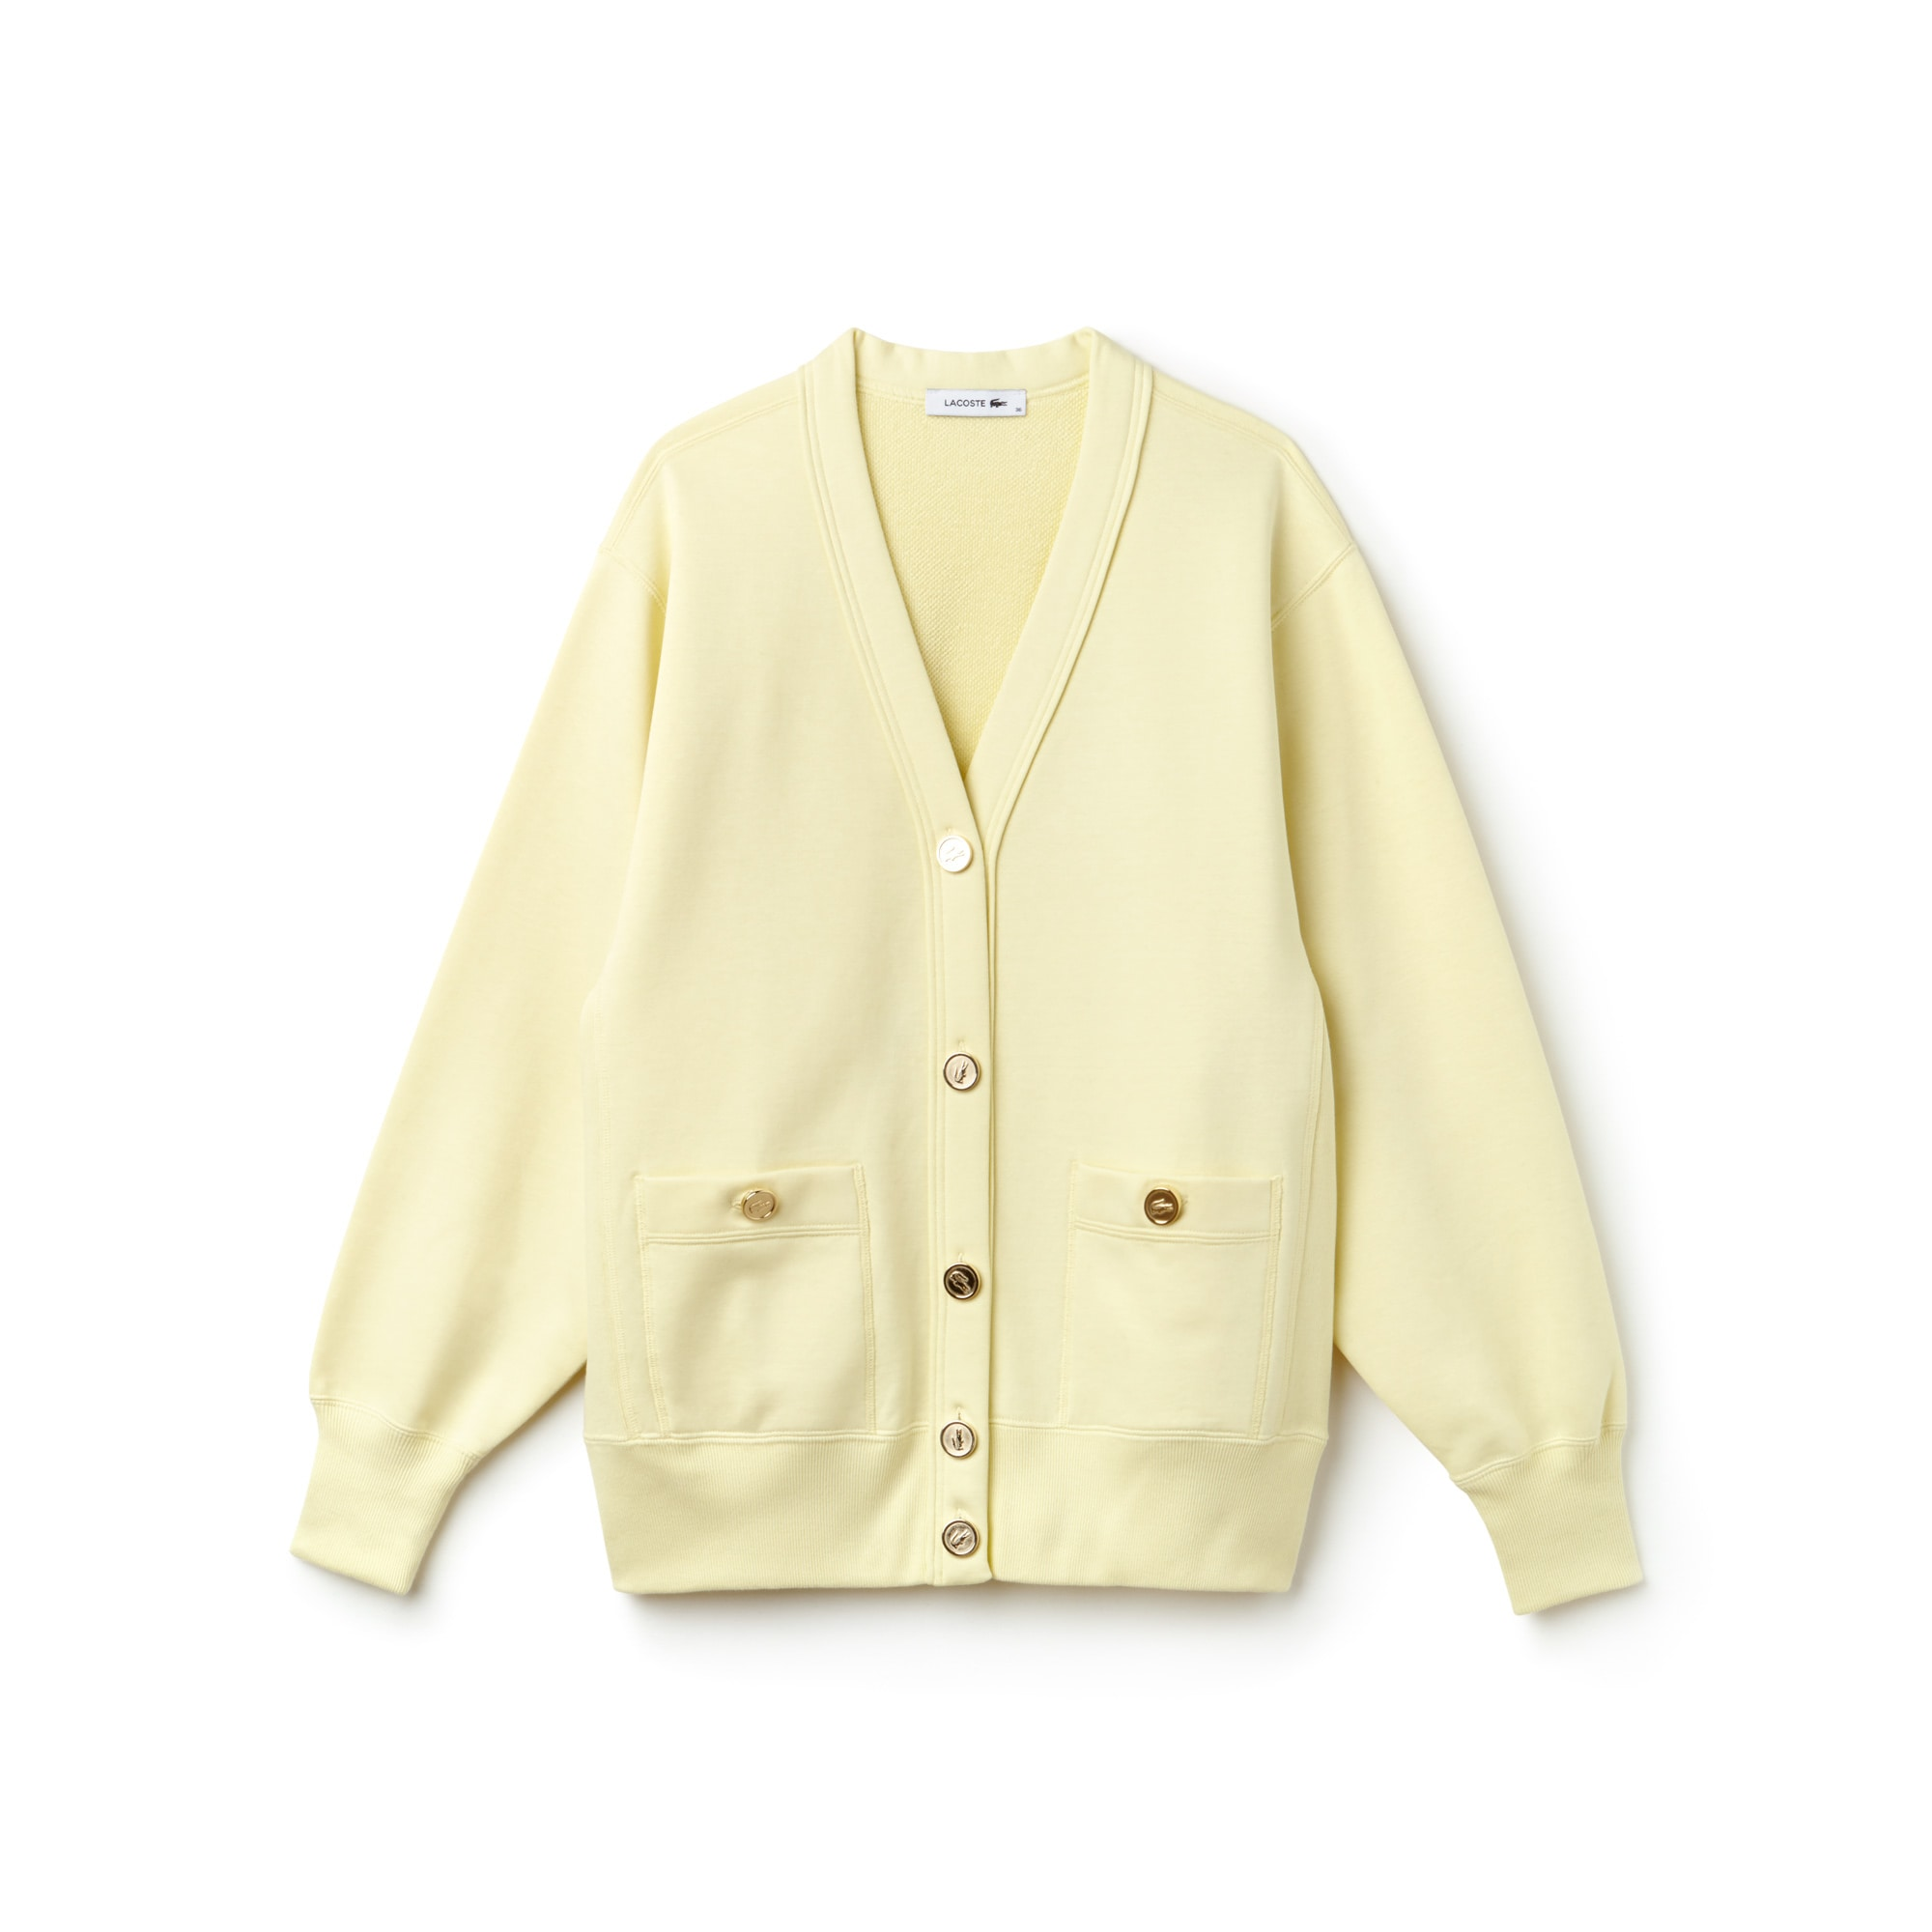 Women's Fashion Show Buttoned Cotton Fleece Cardigan